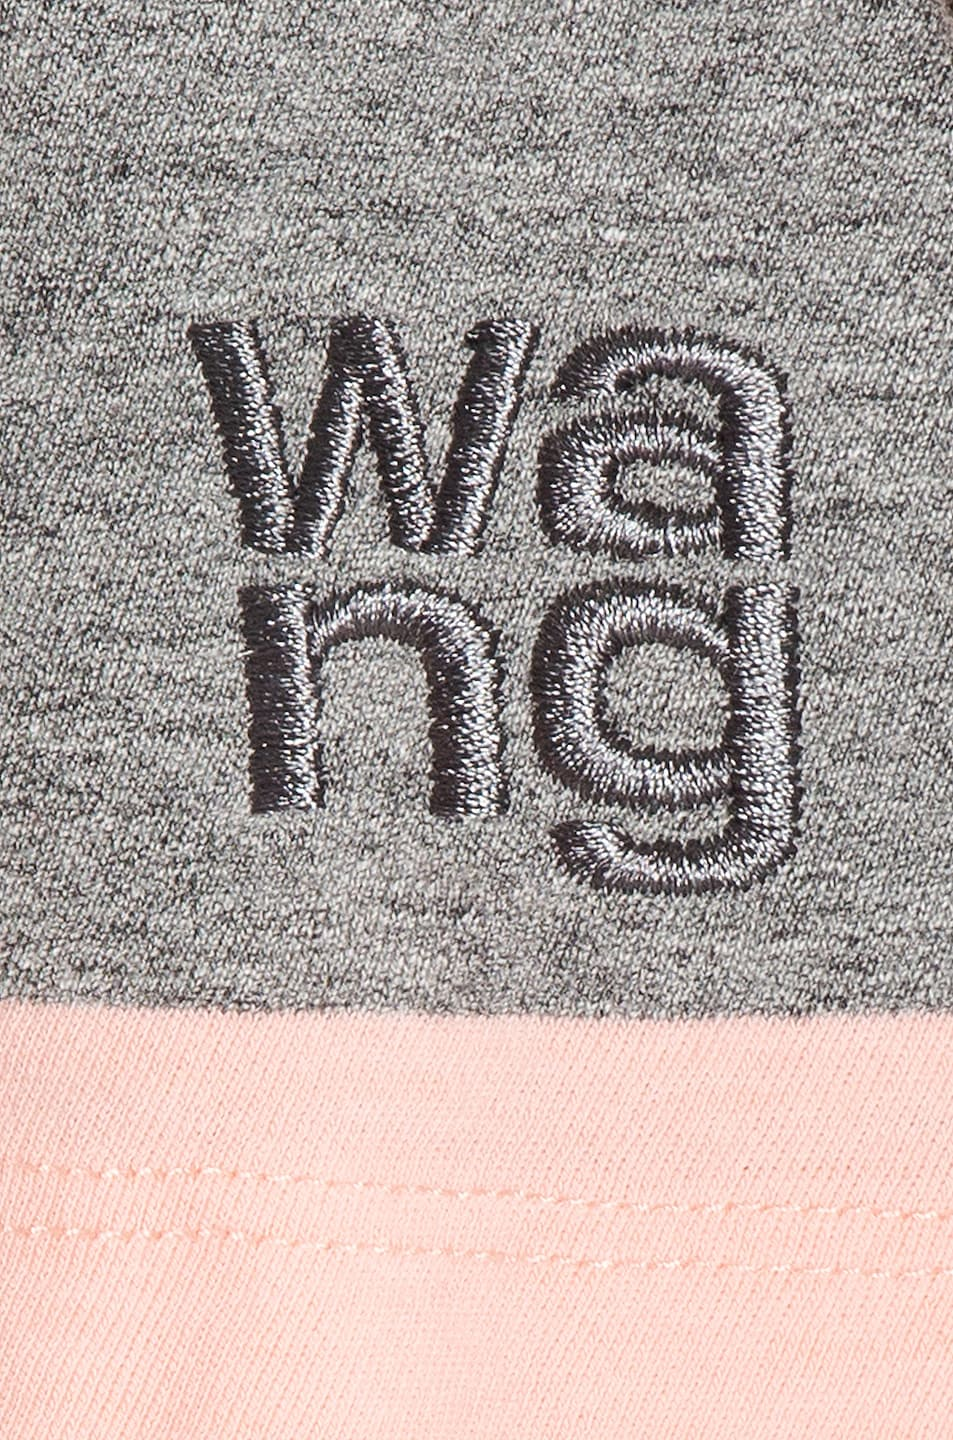 Image 6 of T by Alexander Wang Wash and Go Wide Stripe Crop in Charcoal & Blush